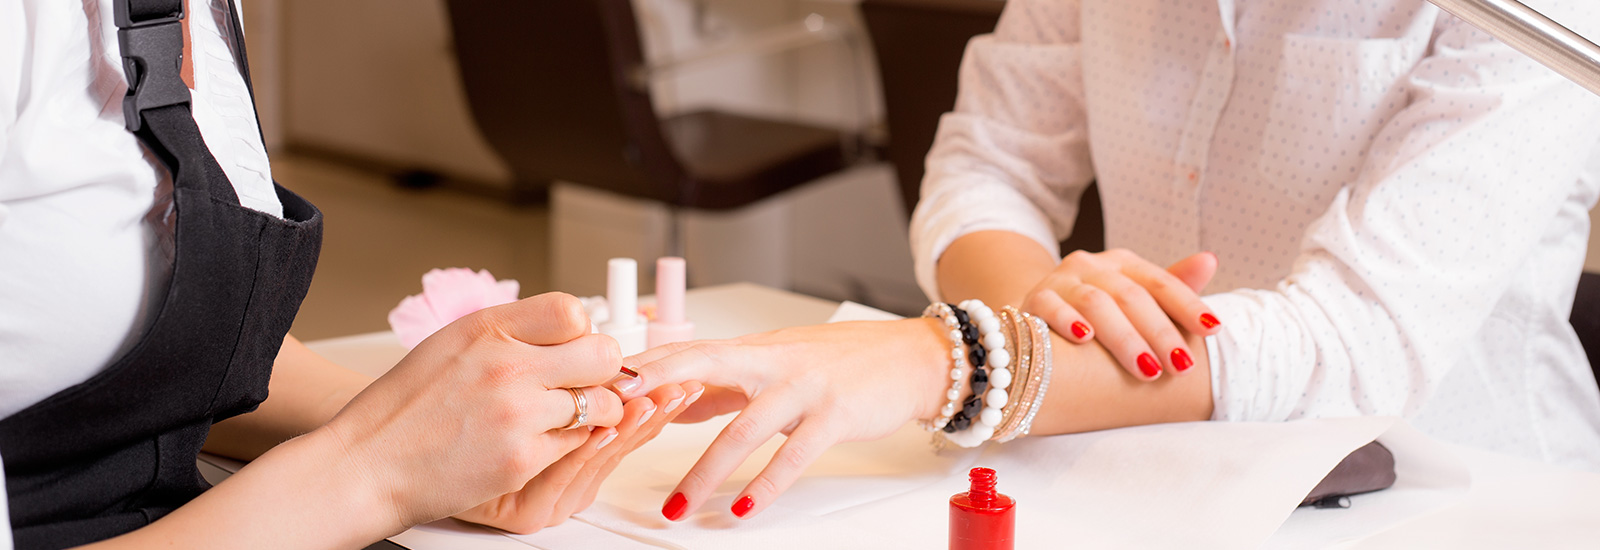 Chiswick Beautique - Nails and Beauty in Chiswick